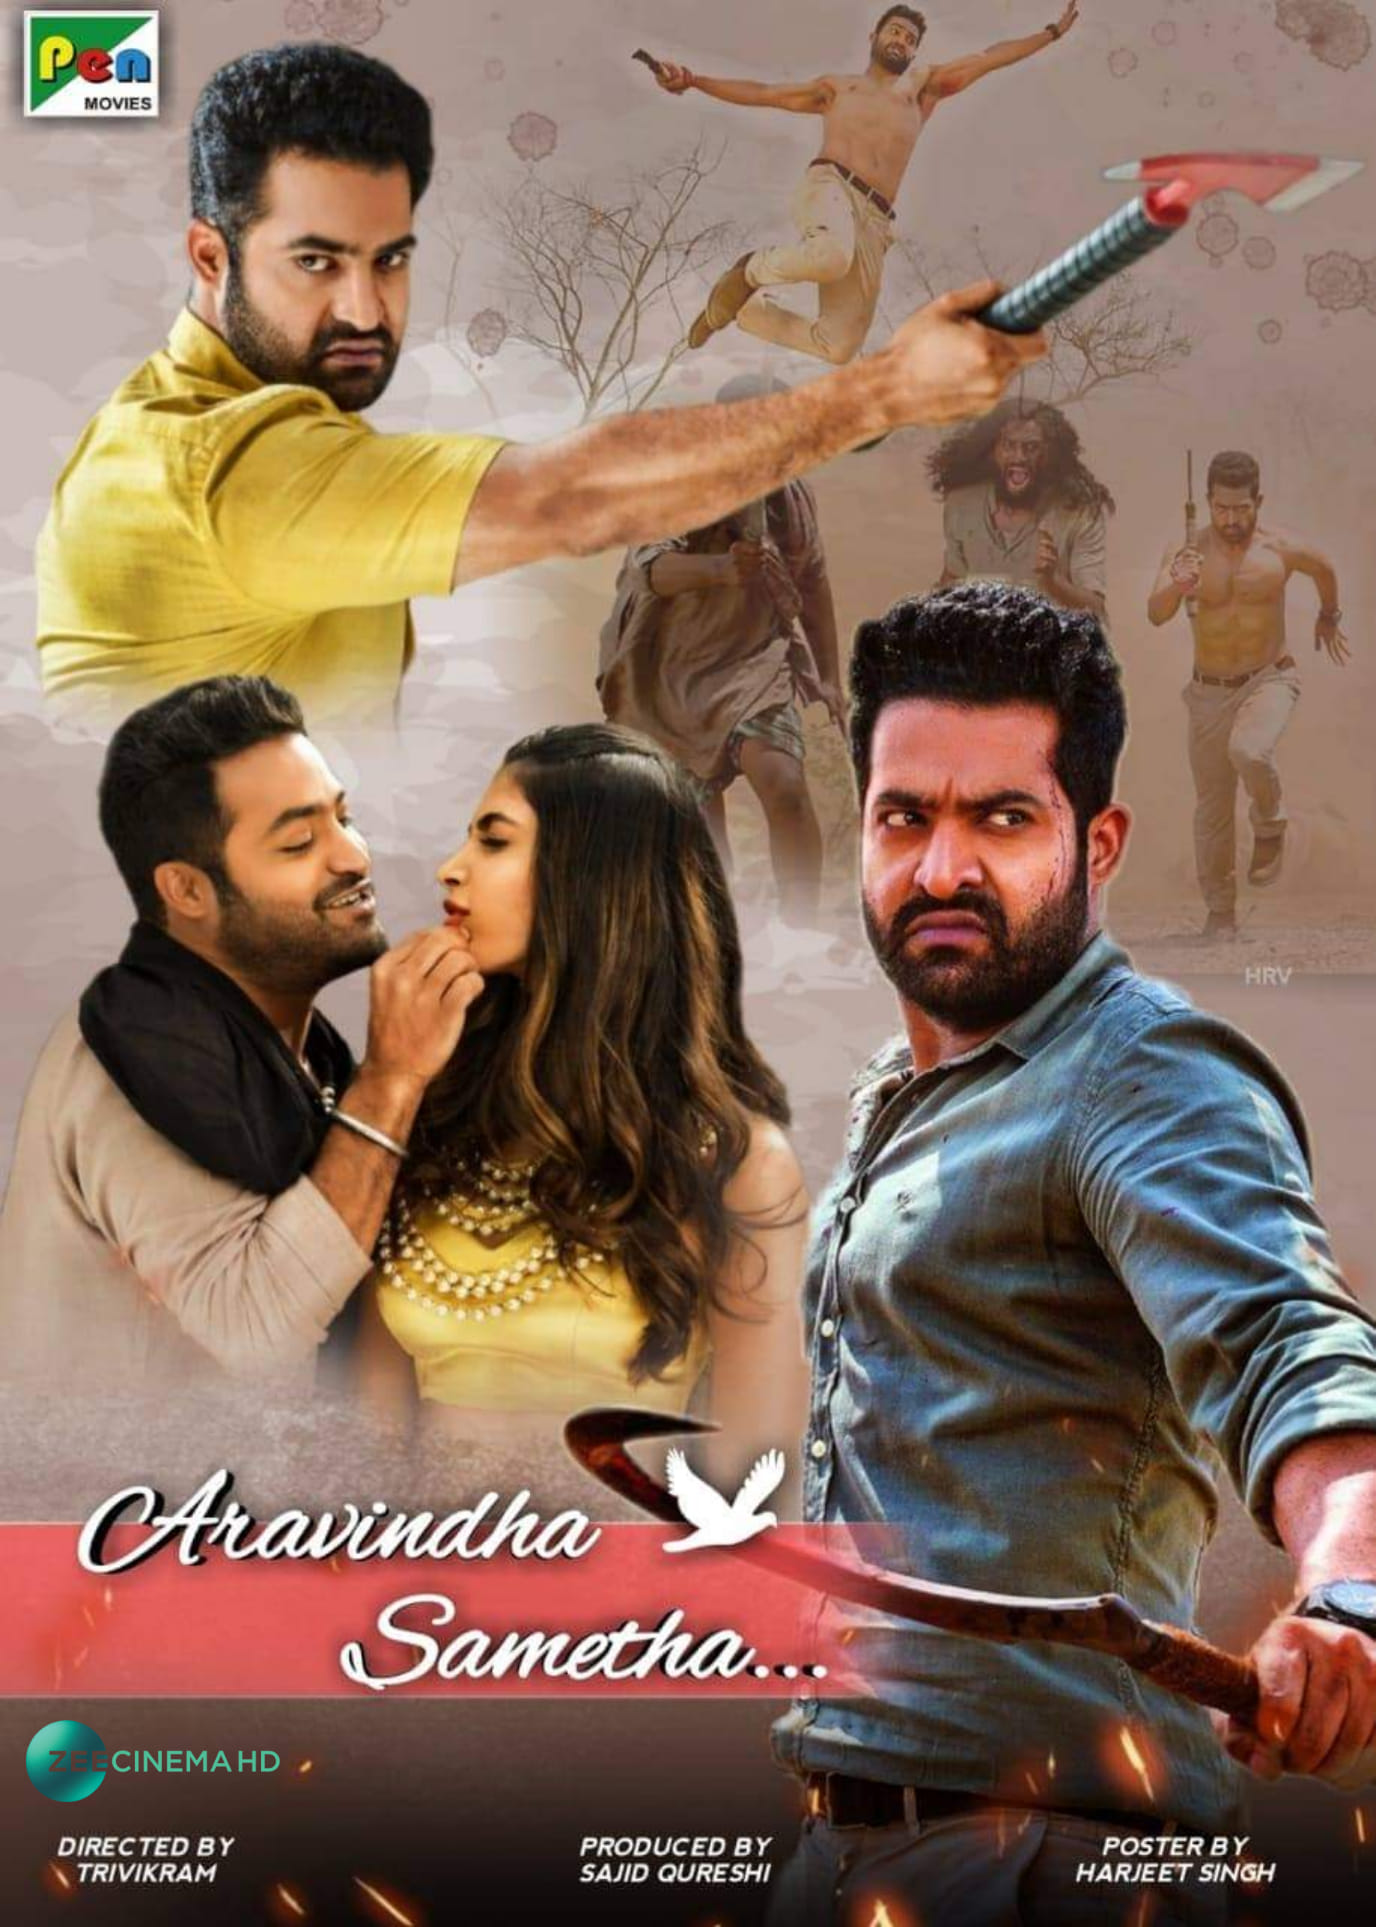 Aravinda Sametha Veera Raghava 2018 Hindi Dual Audio 480p UNCUT HDRip 550MB x264 AAC